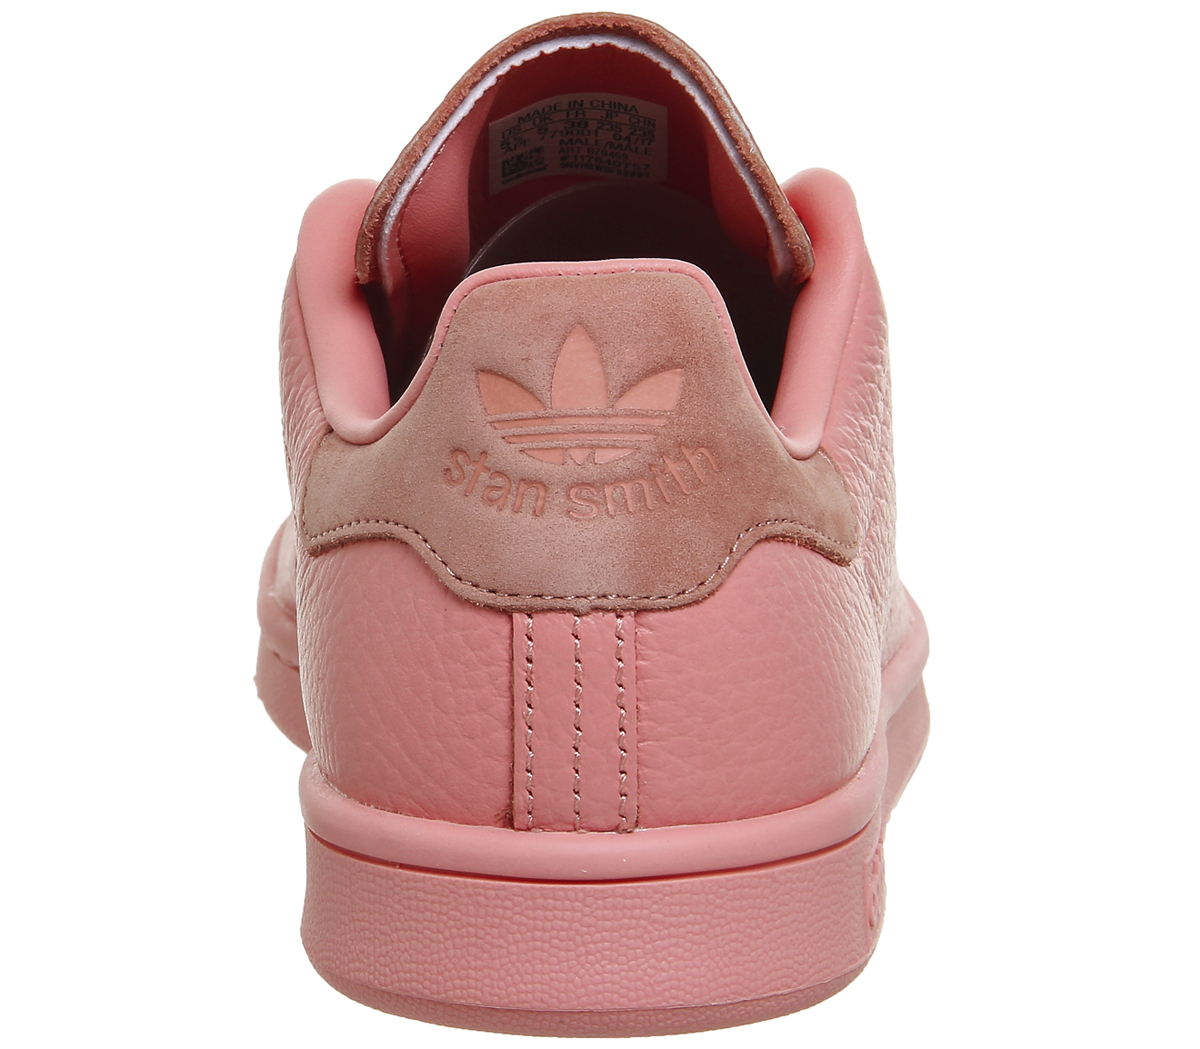 8bbe86425b1b Sentinel Womens Adidas Stan Smith TACTILE ROSE RAW PINK Trainers Shoes